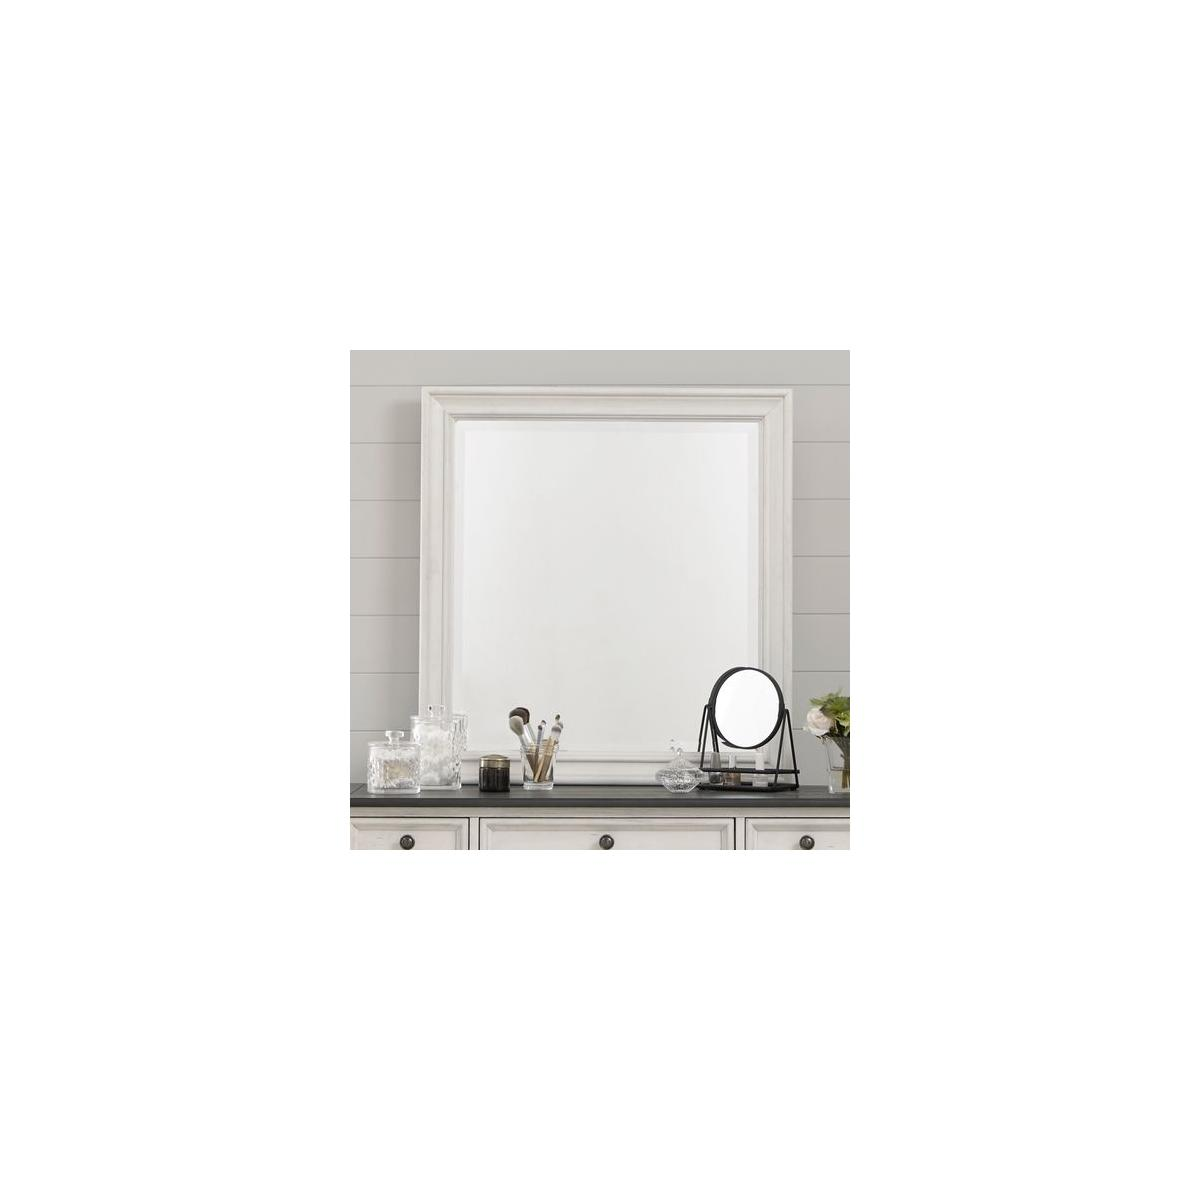 Counter Height Vanity Mirror